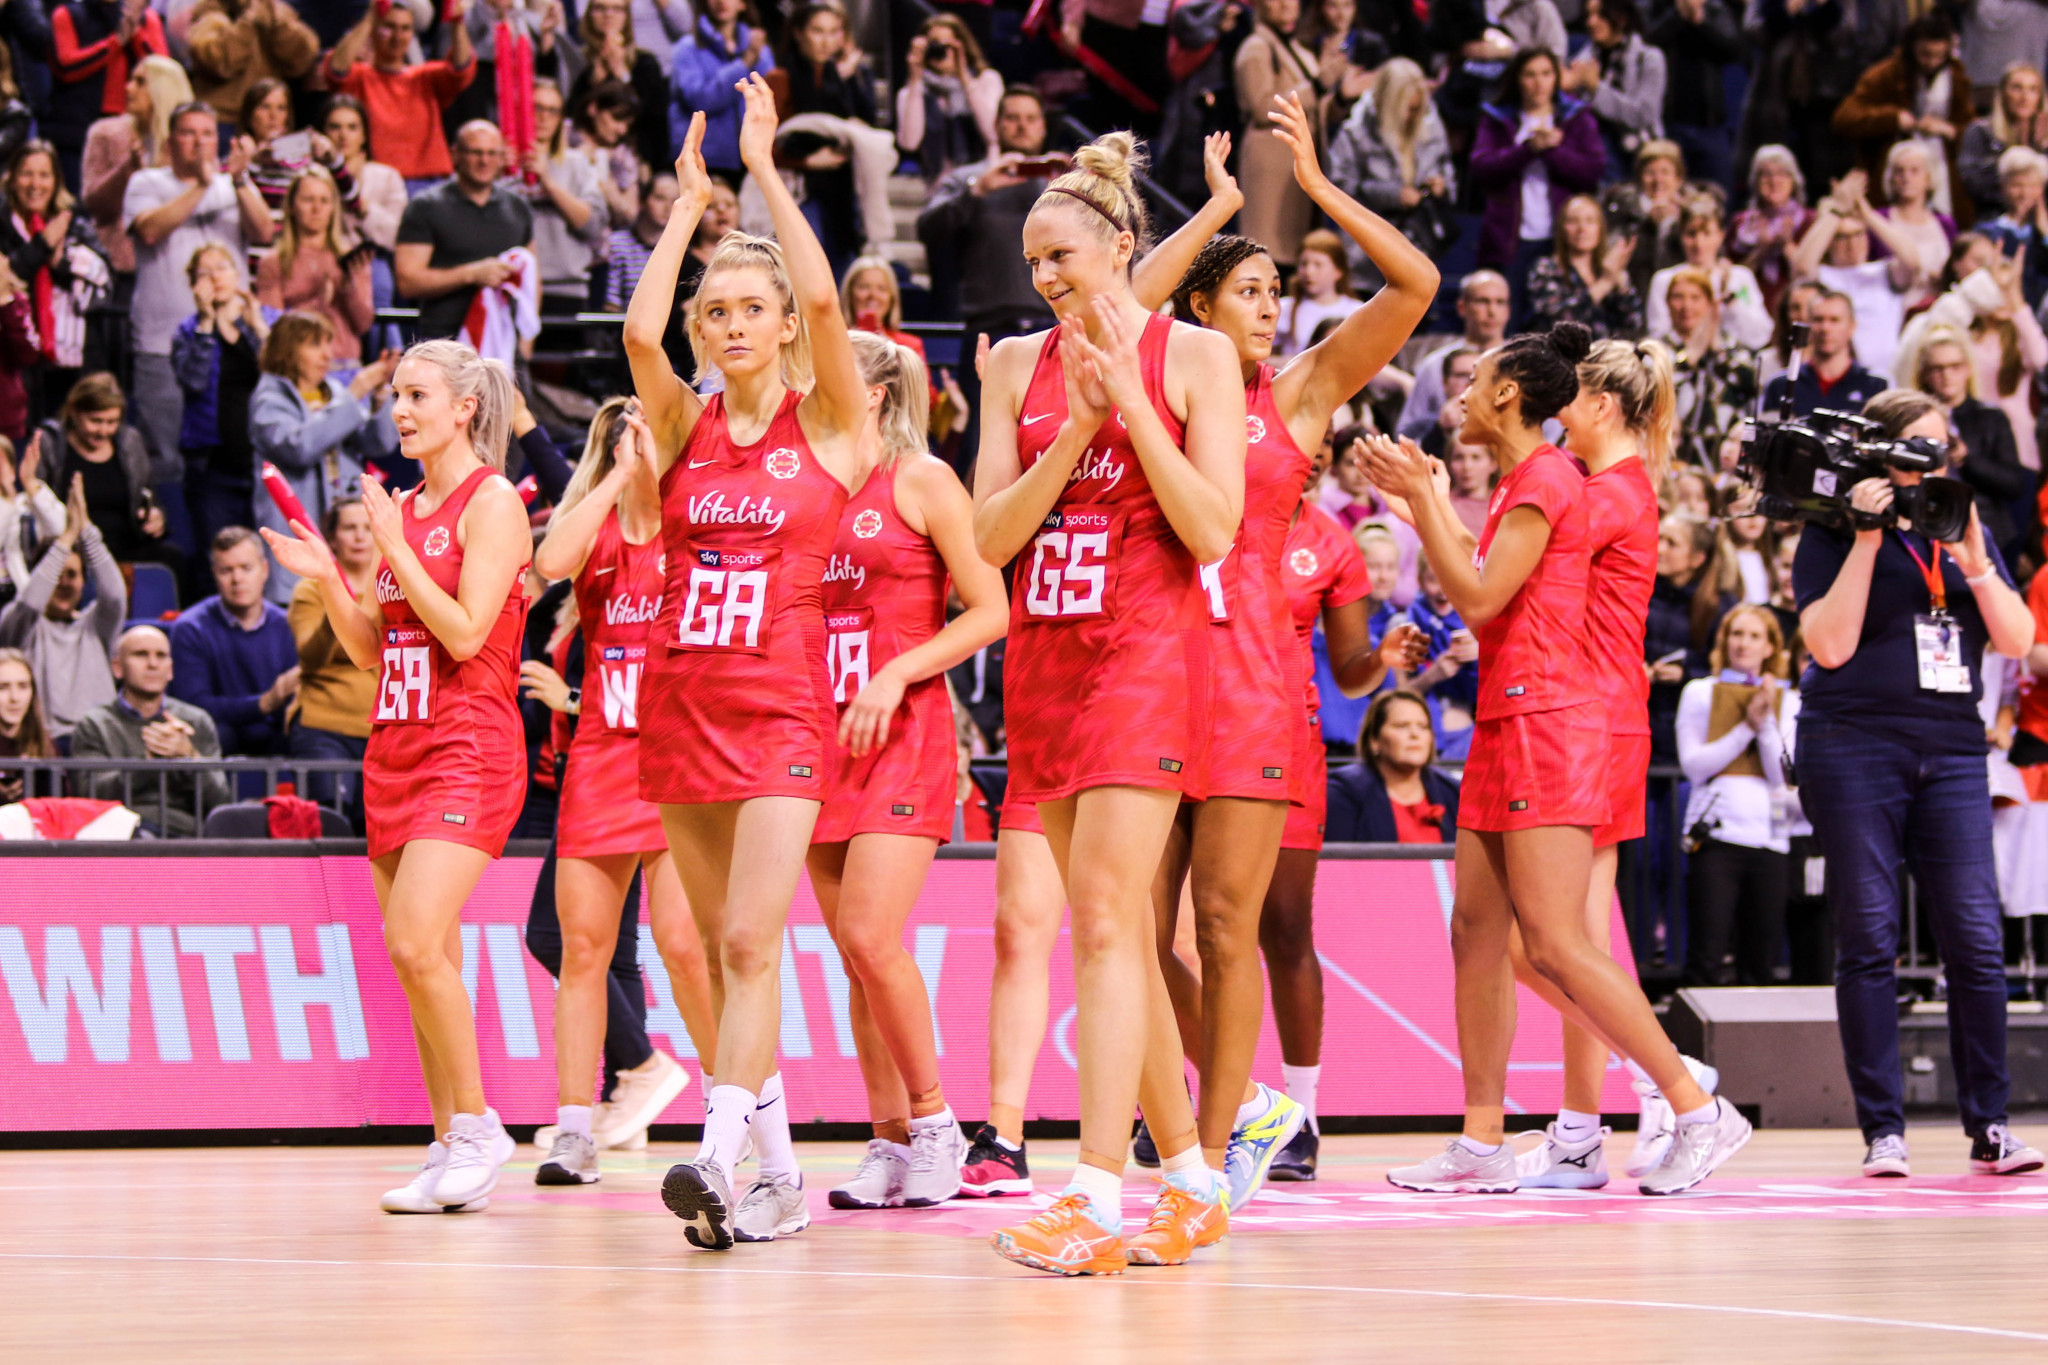 The Vitality Roses are preparing for the 2019 World Cup in Liverpool ©Eliza Morgan/England Netball